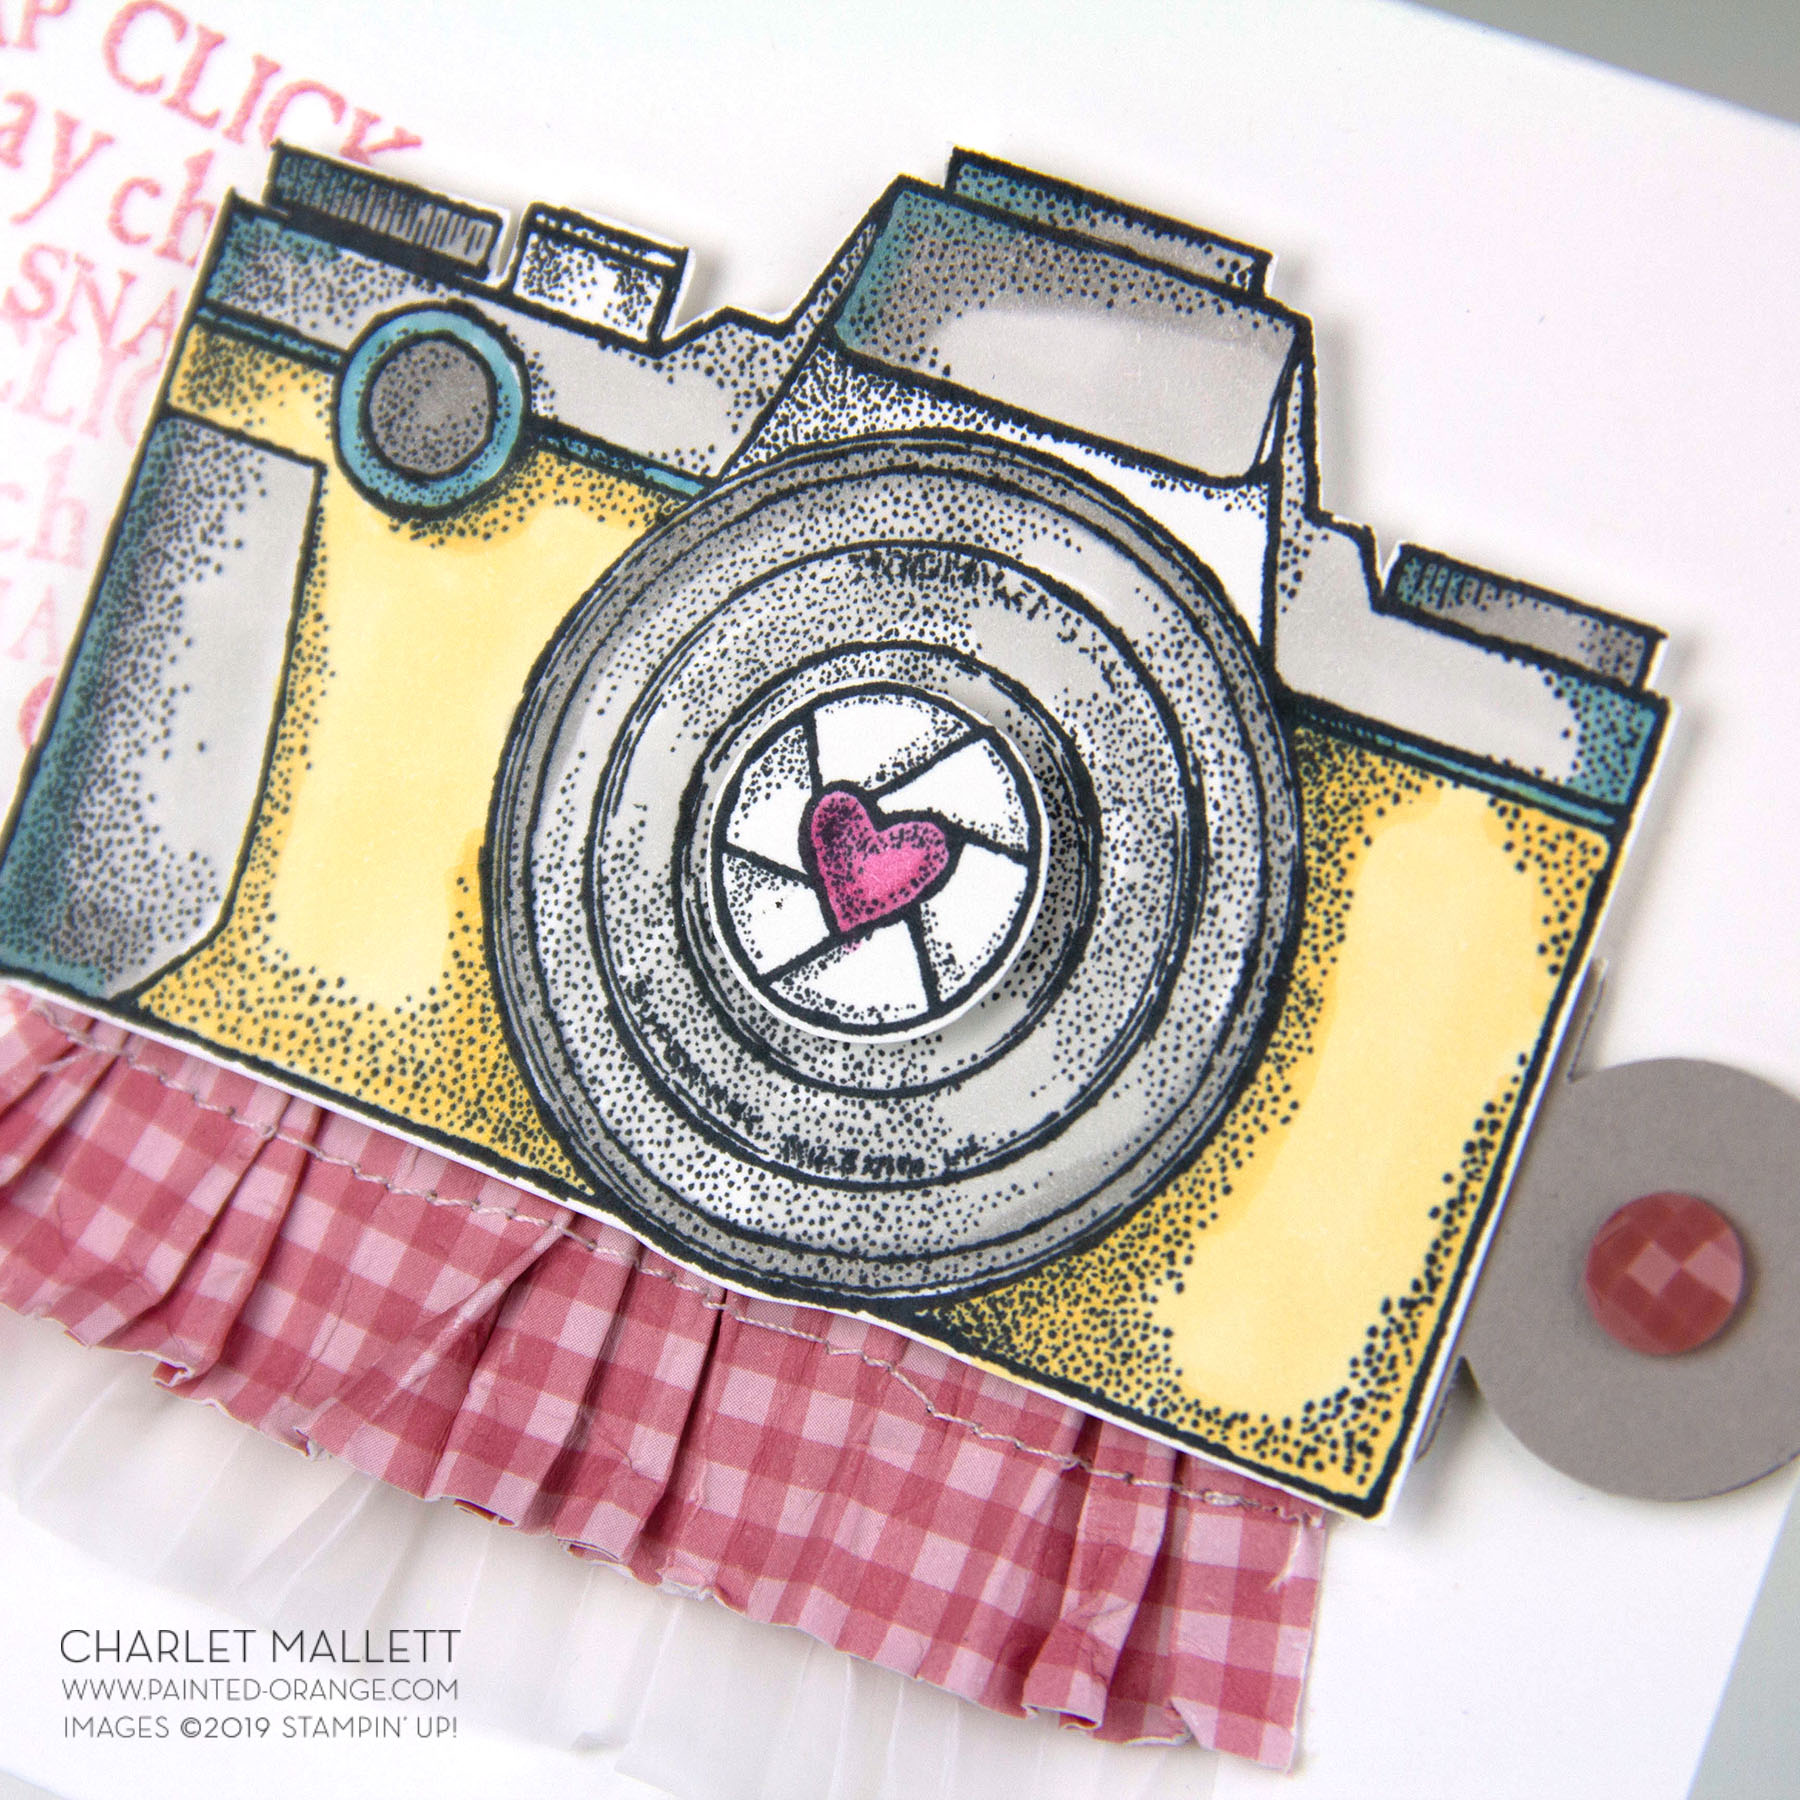 Capture the Good Camera Card - Charlet Mallett, Stampin' Up!